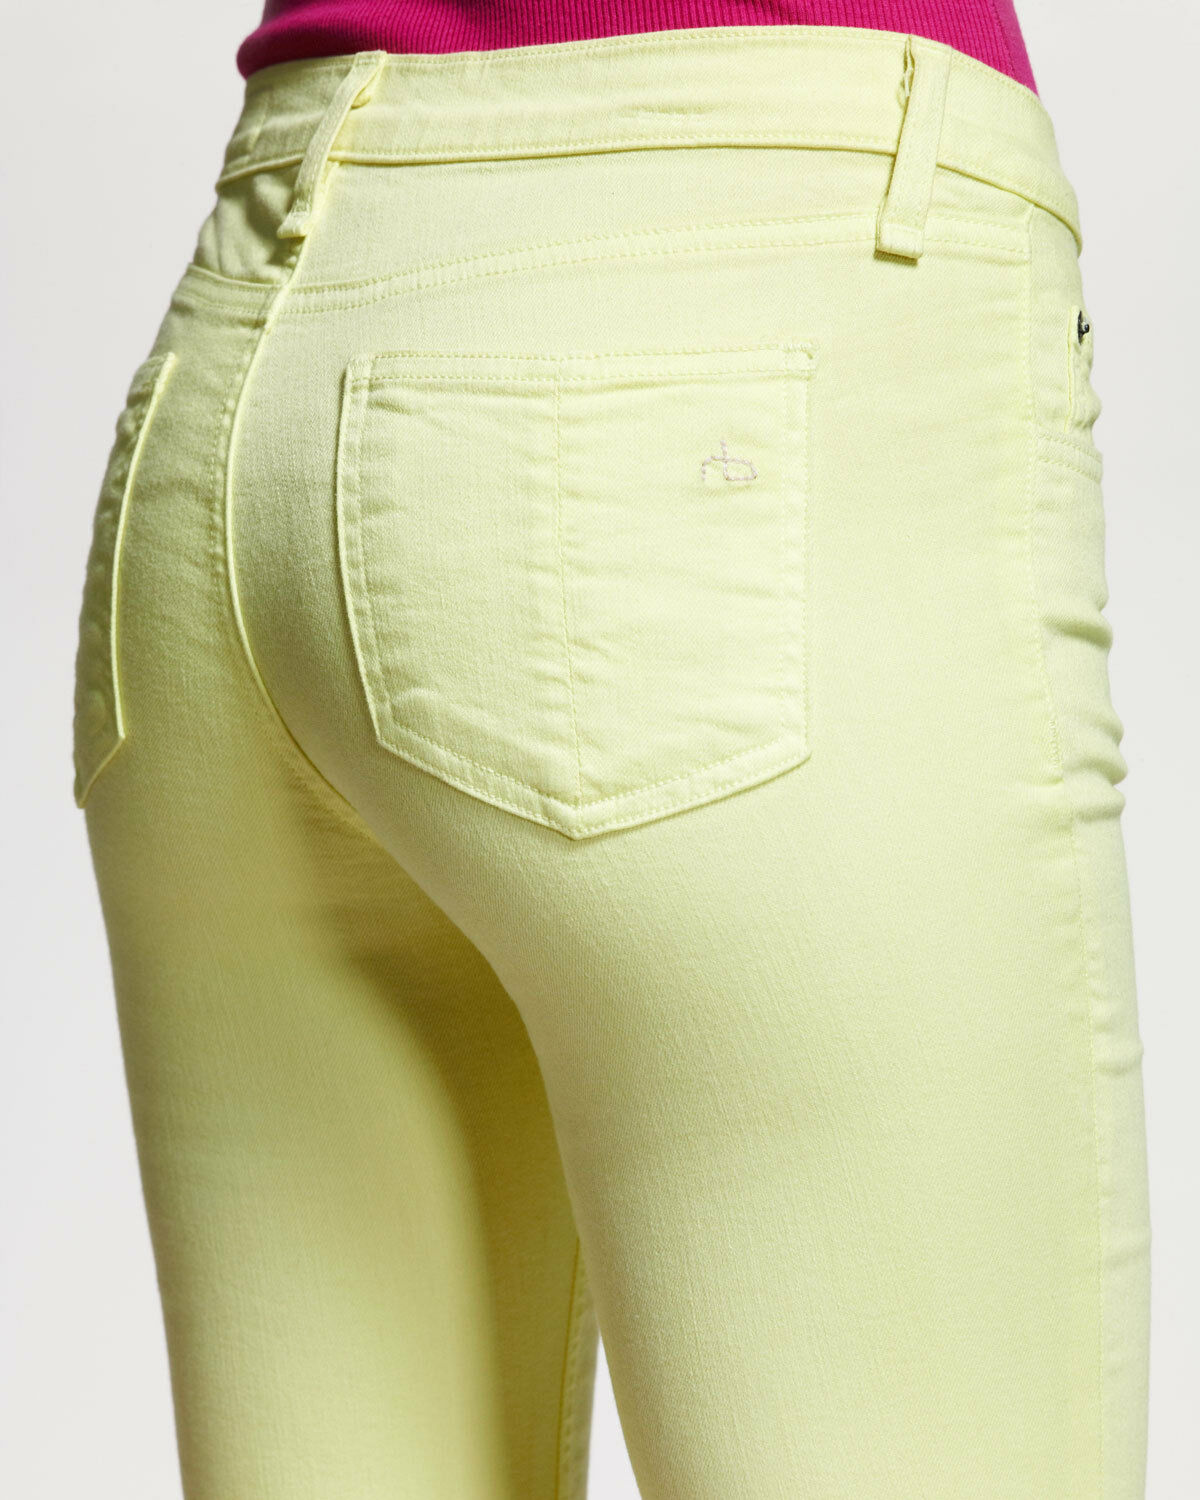 NWT WOMEN'S RAG & BONE PANTS SKINNY CANARY STY W15020337 SZ 24-31 MSRP